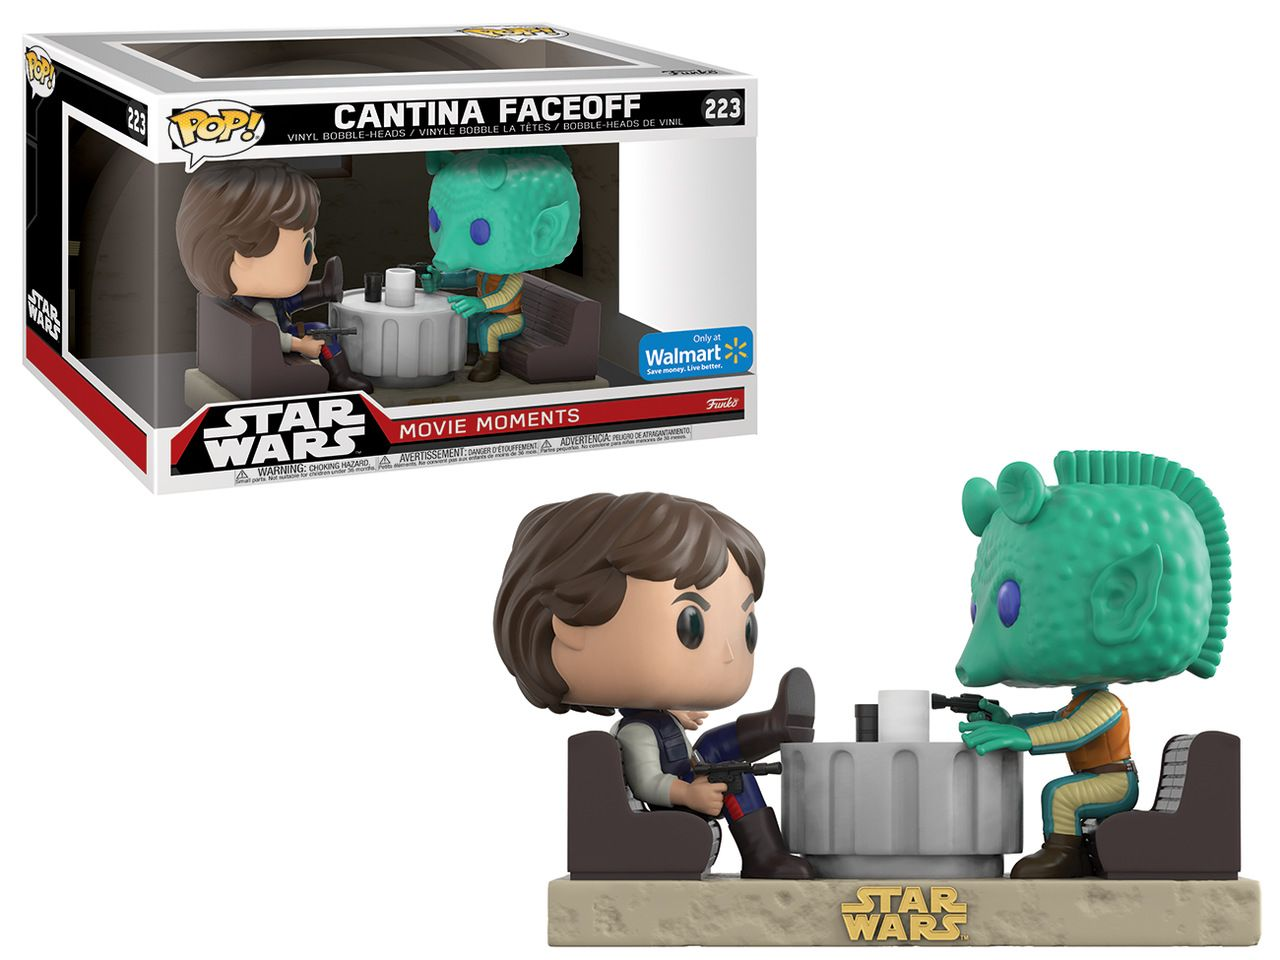 Pop! Cantina Faceoff (Han Solo/Greedo): Star Wars (Movie Moments) Exclusivo #223 - Funko (Apenas Venda Online)